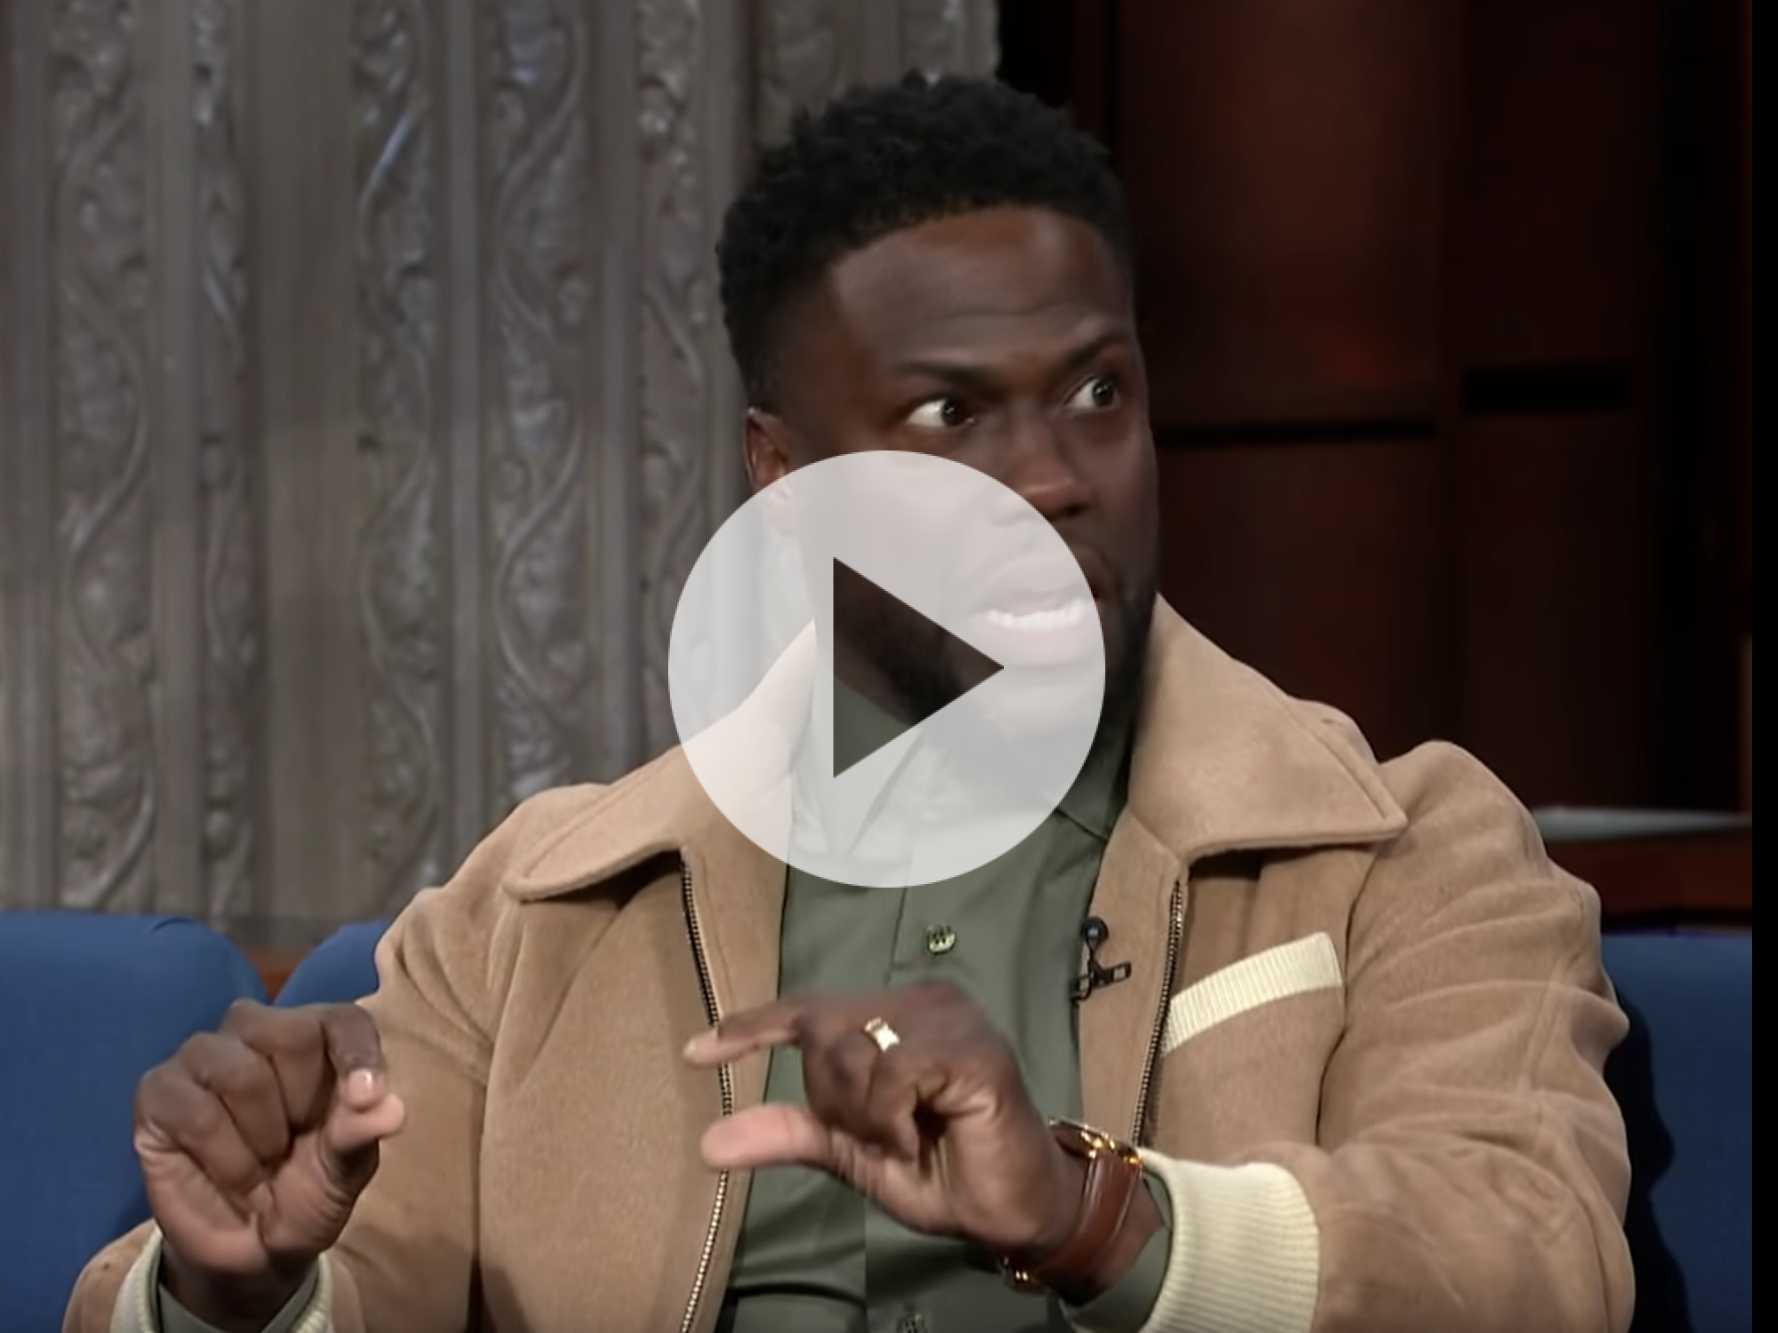 Watch: Kevin Hart Goes on 'Late Show,' Talks About How He Won't Talk About Anti-Gay Comments Anymore